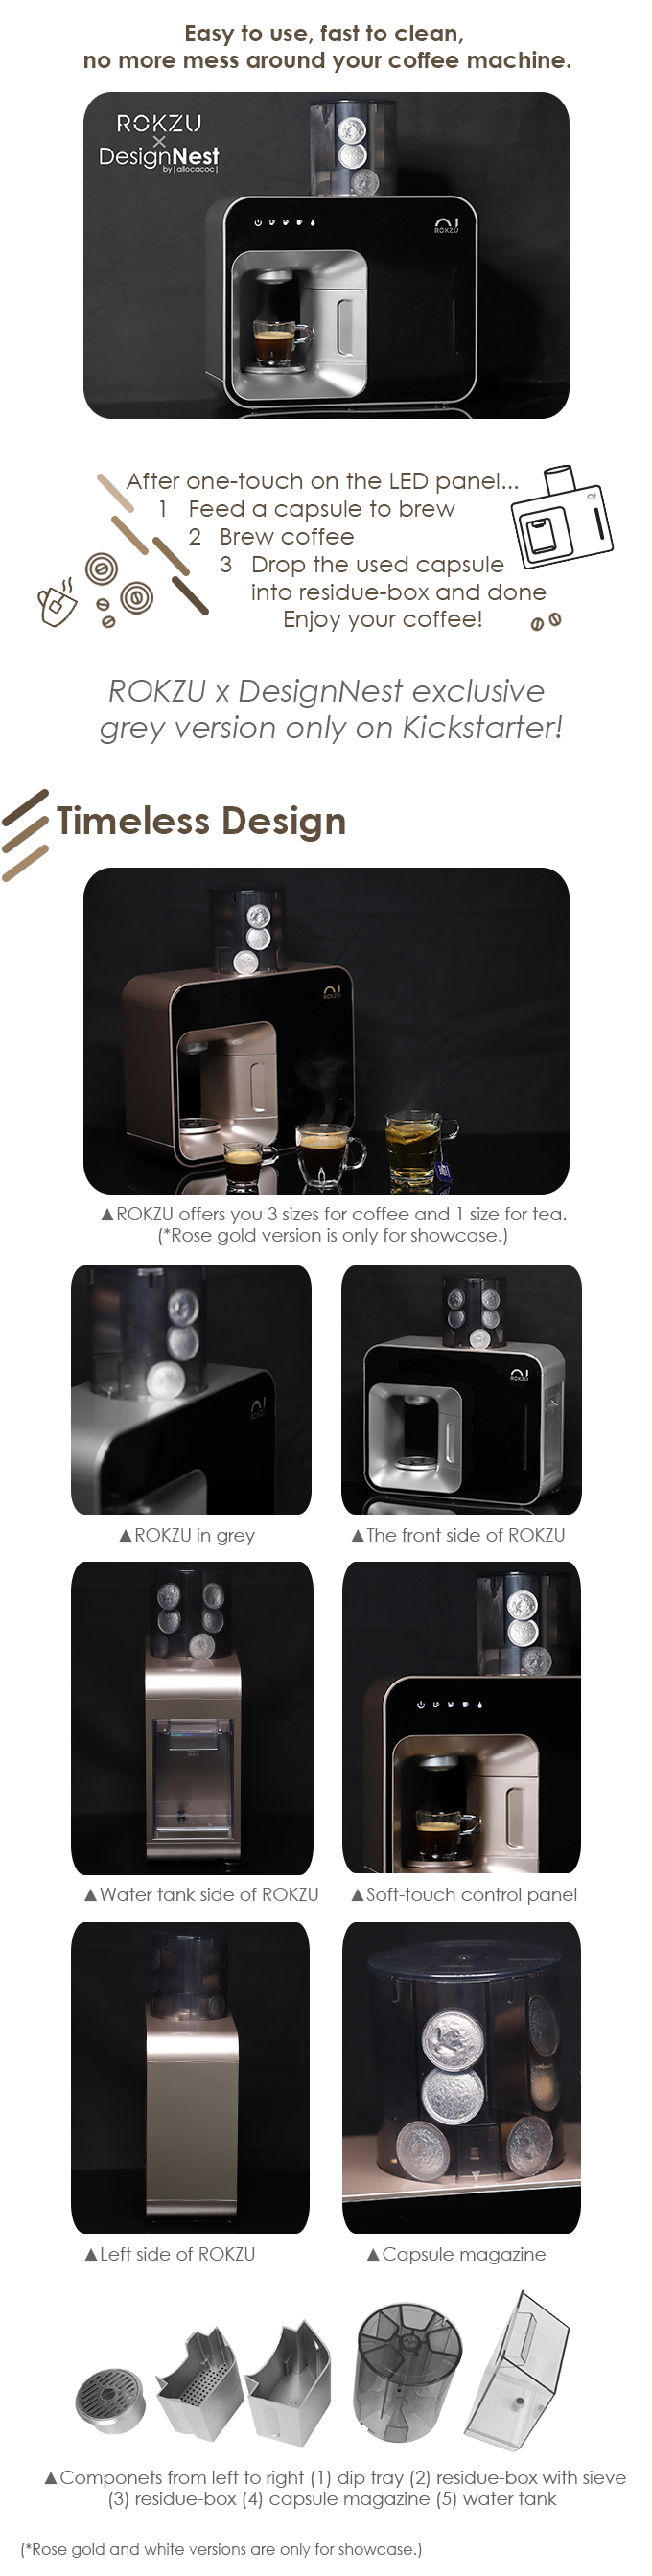 ROKZU™: World's first fully automatic capsule coffee maker